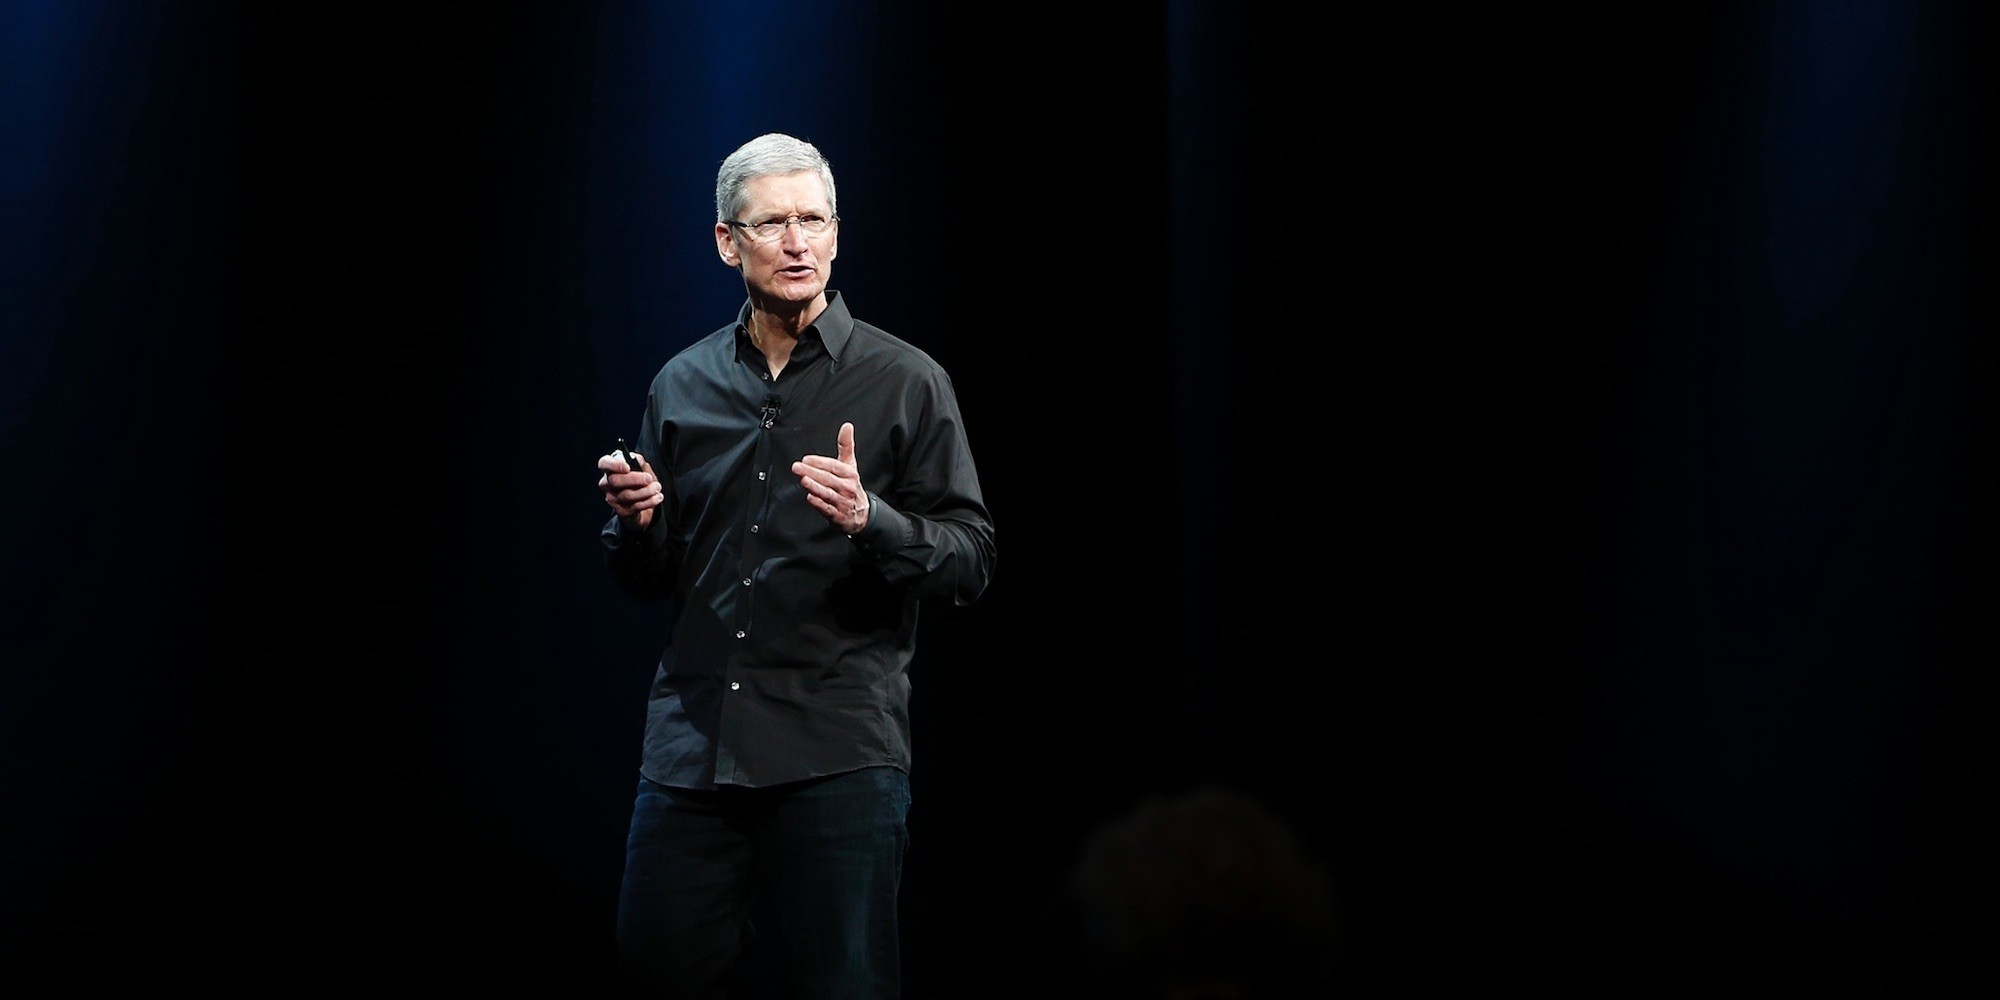 everything-apple-releases-with-iphone-in-september-2018